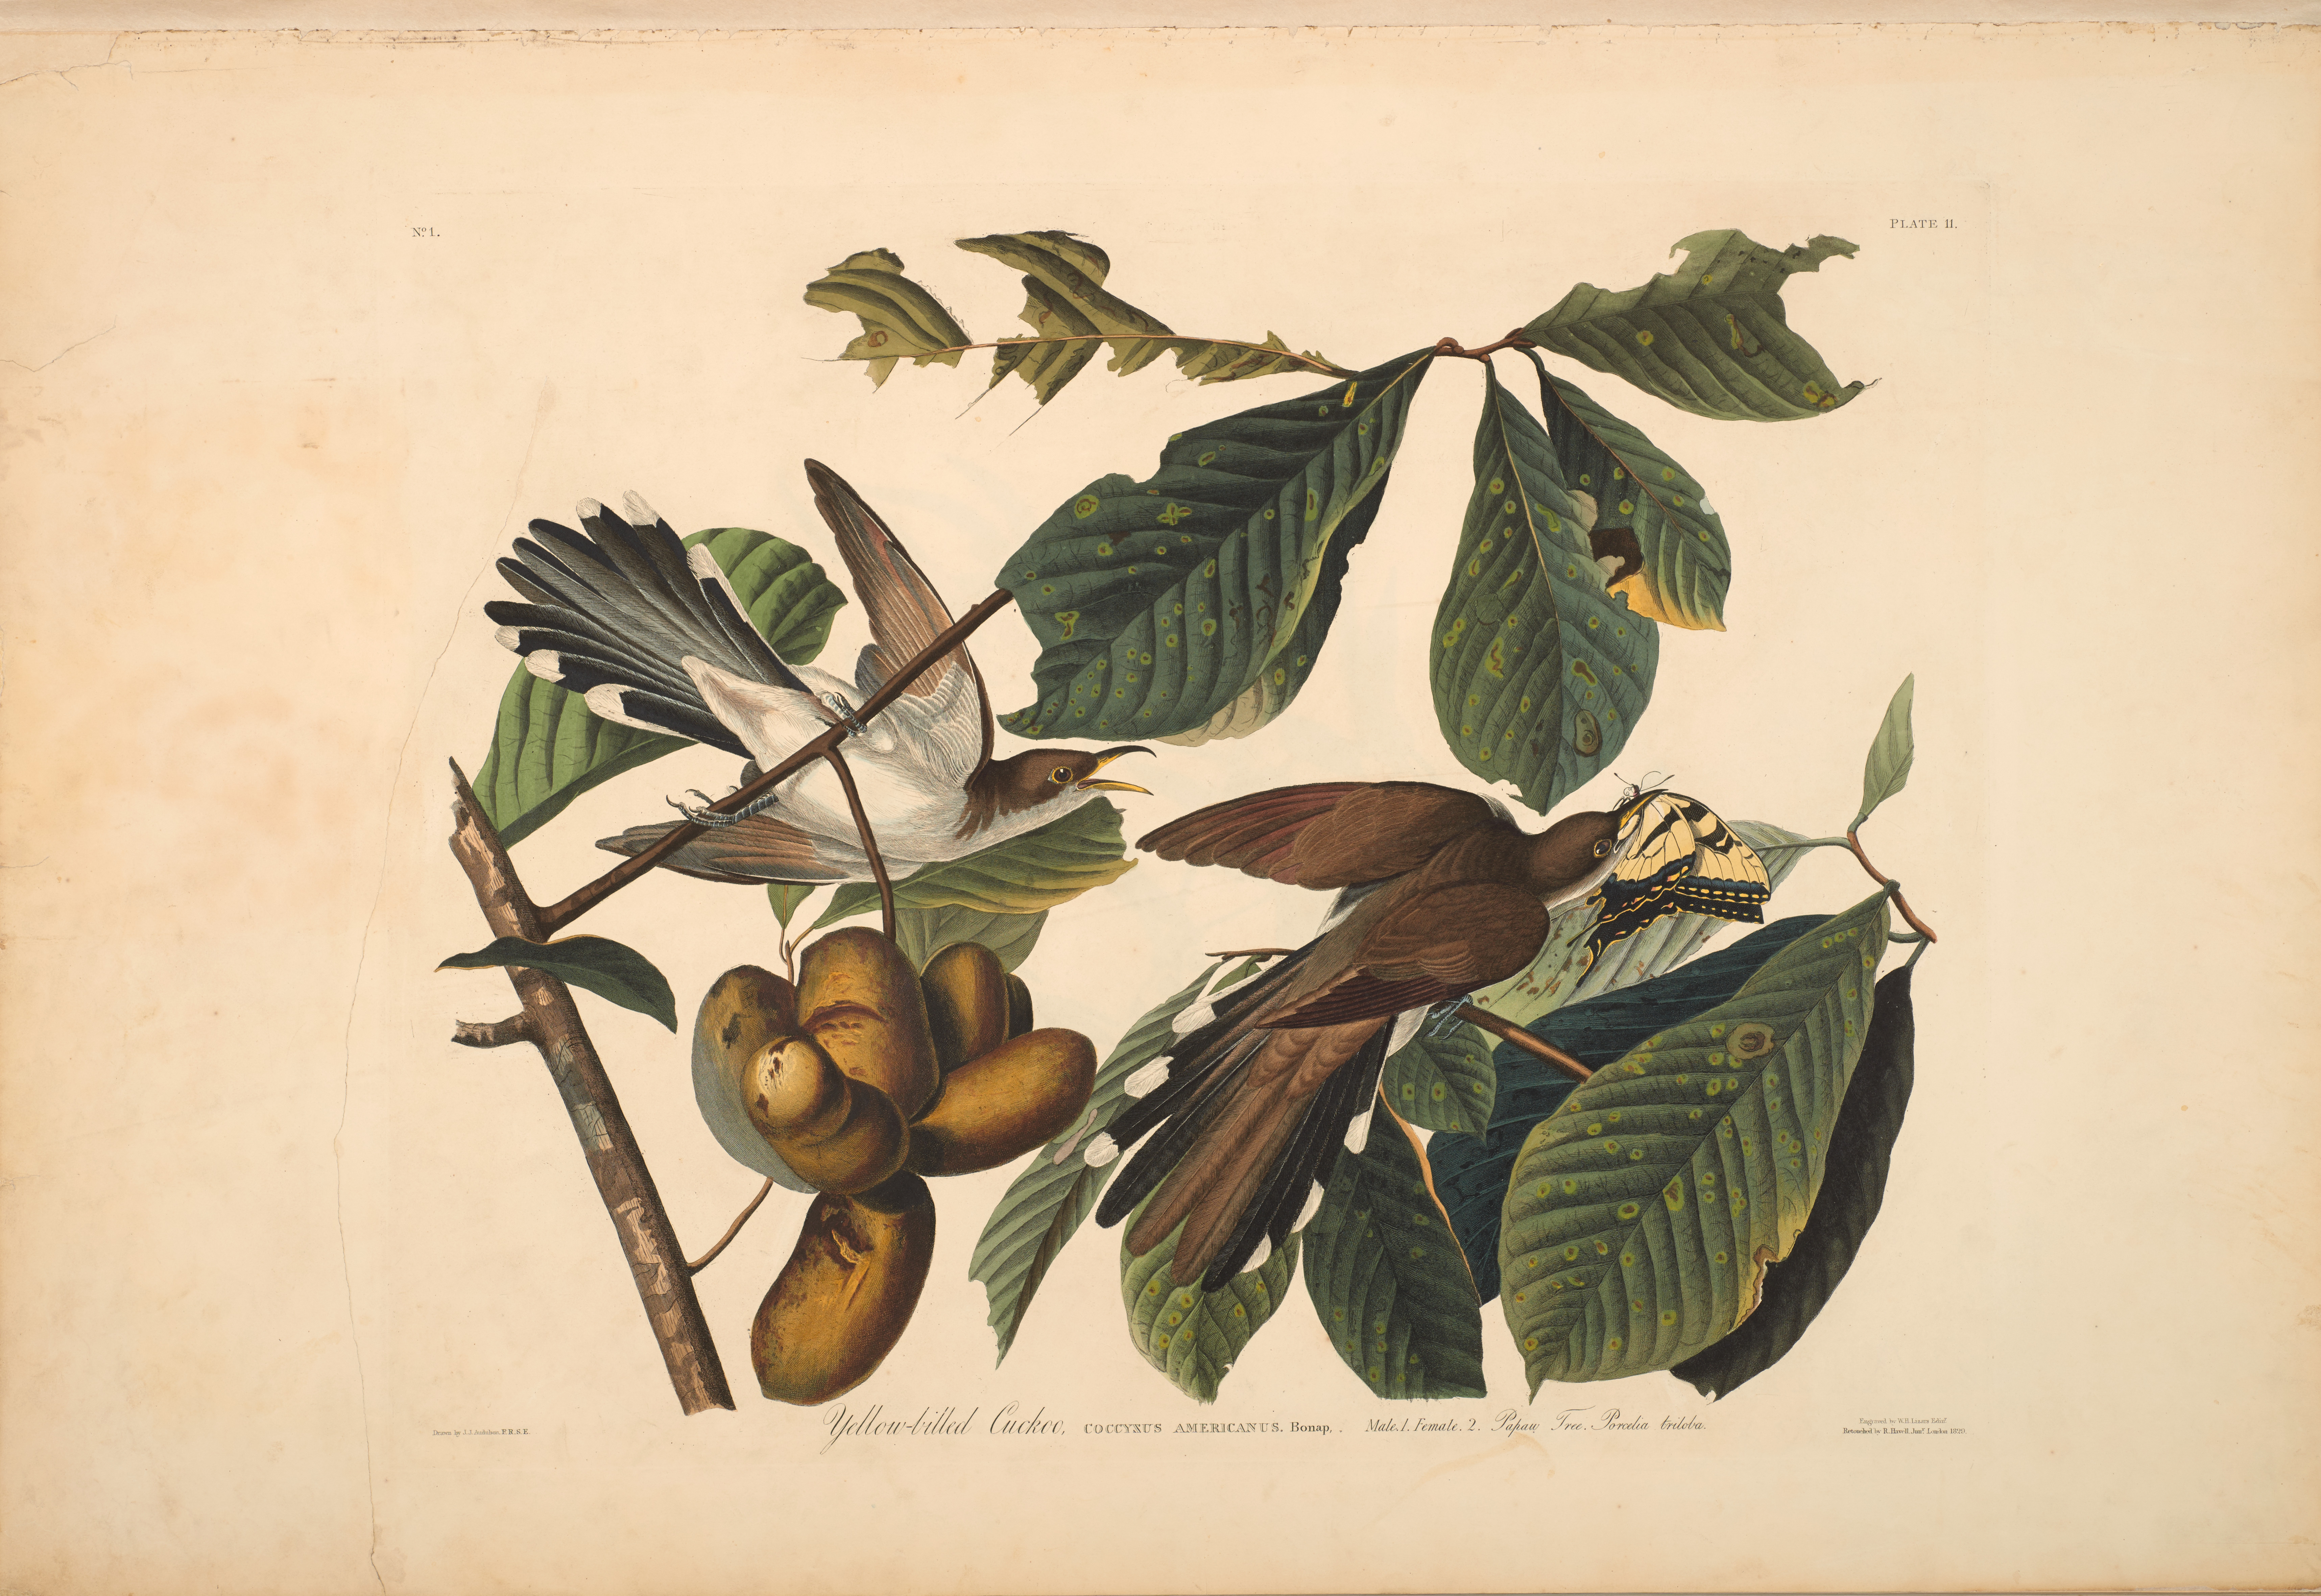 John James Audubon , Yellow-billed Cuckoo, from The Birds of America, 1827 – 38, hand-colored aquatint/engraving on paper , 40 x 26 in., North Carolina Museum of Art, Transfer from the North Carolina State Library